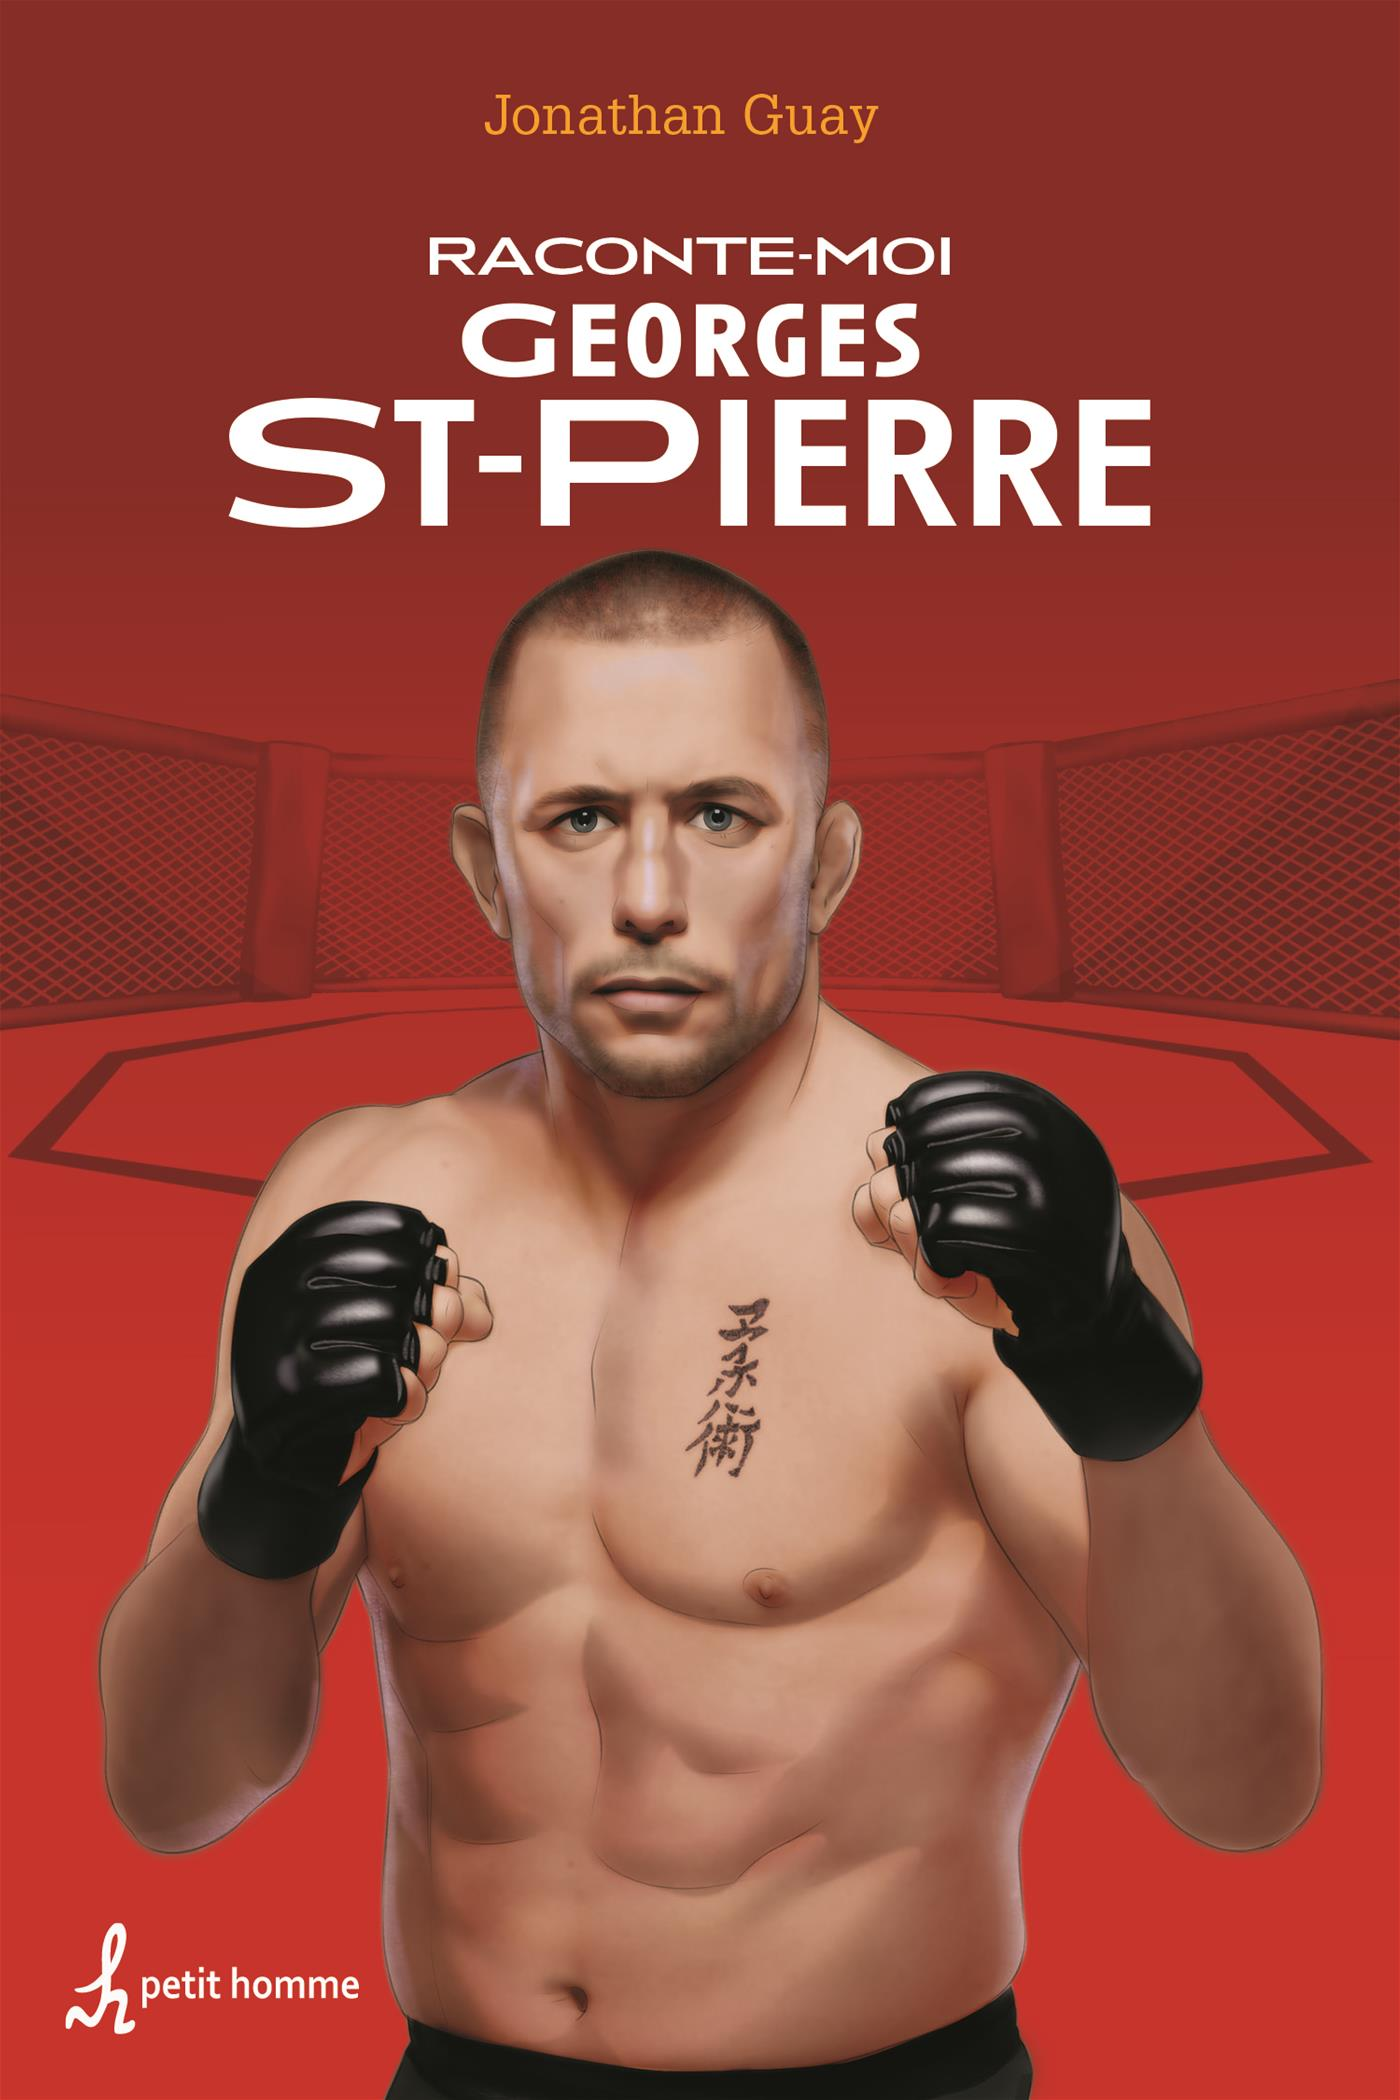 Raconte-moi Georges St-Pierre  - Nº 33